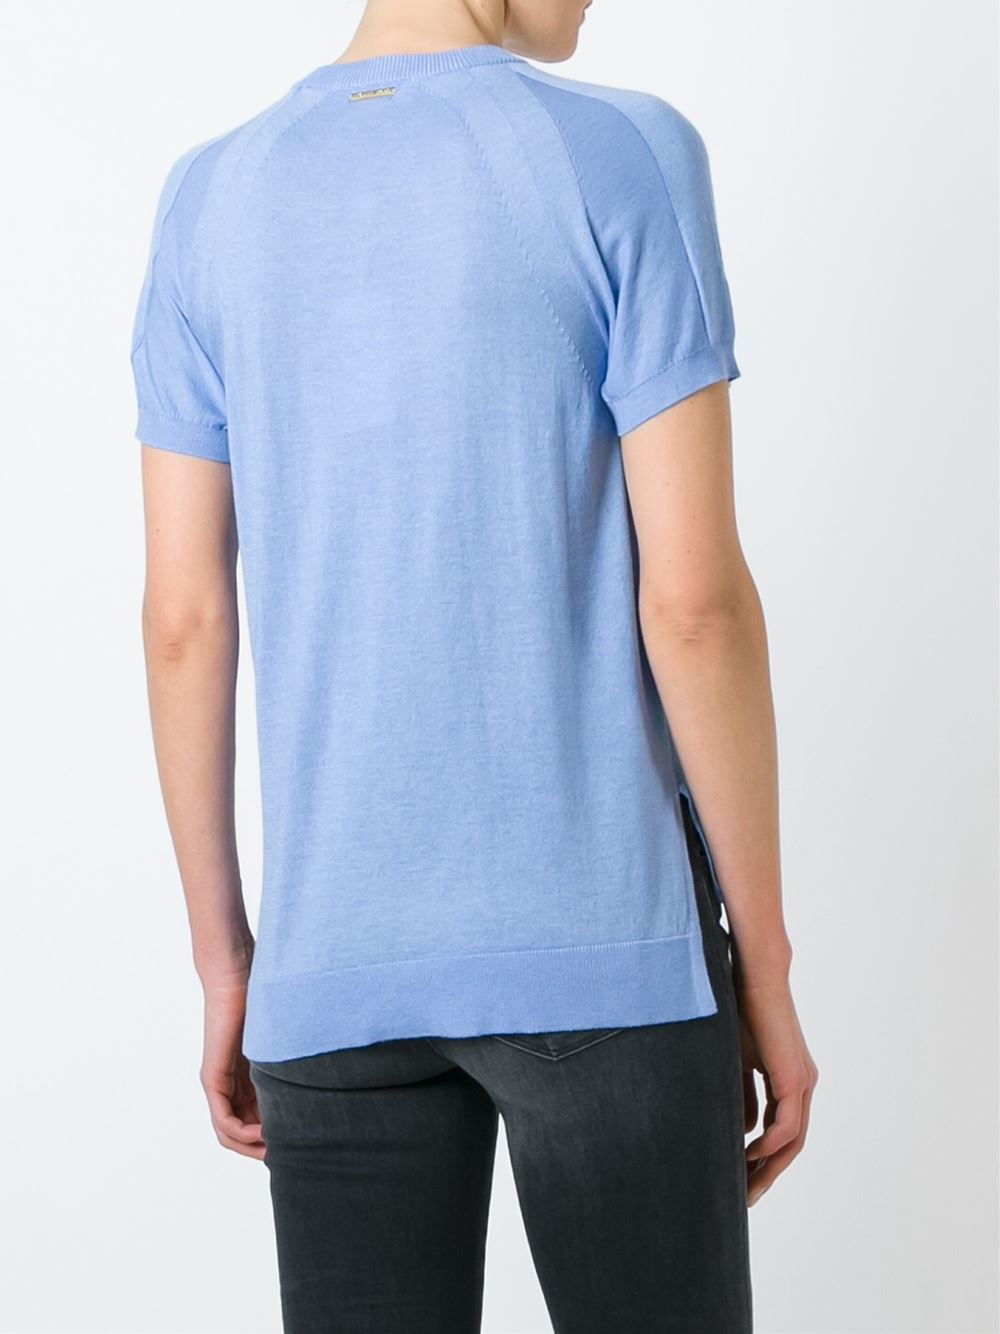 michael michael kors knitted t shirt in blue lyst. Black Bedroom Furniture Sets. Home Design Ideas